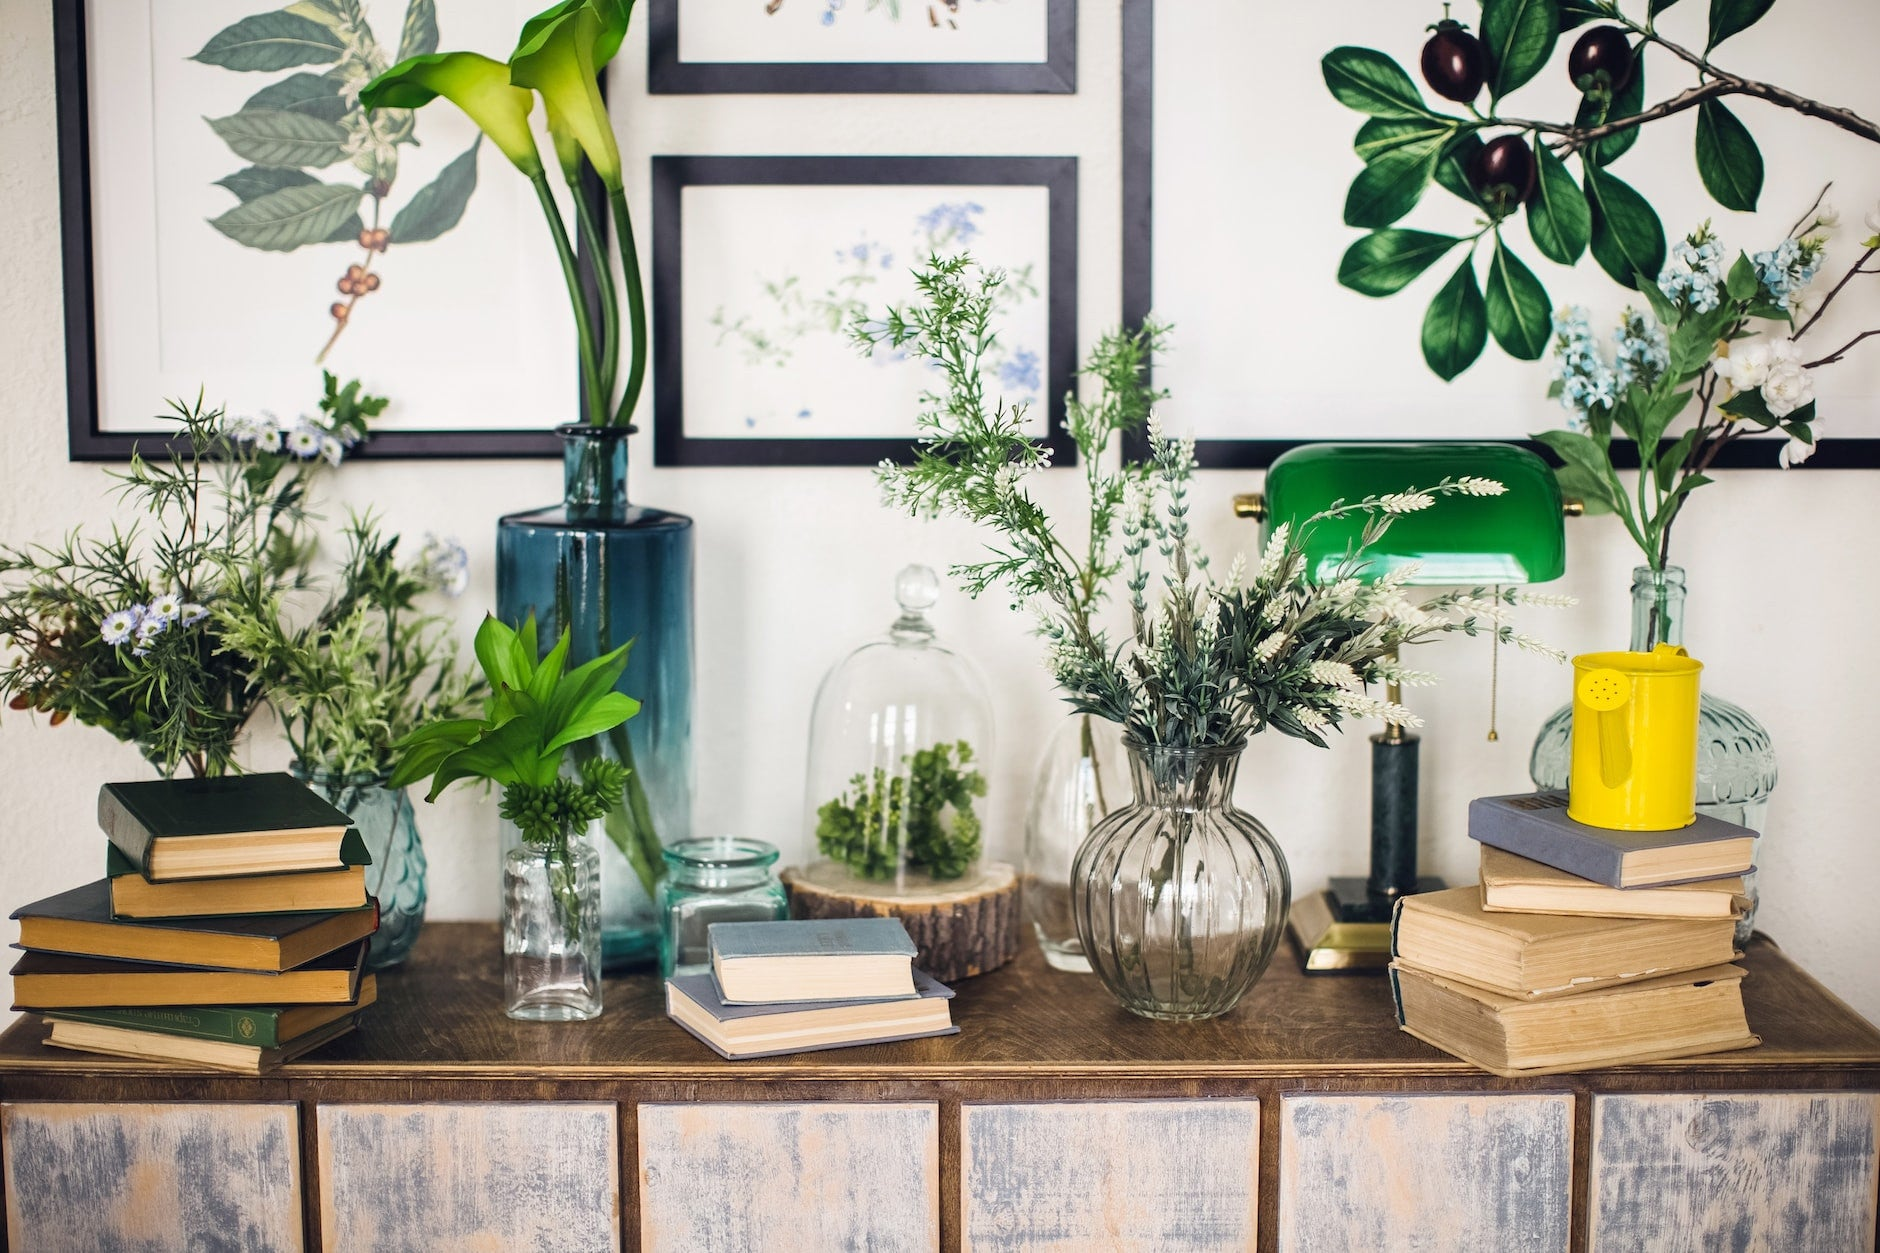 Master the Art of Display - Learn how to Turn Heads with Your Decor